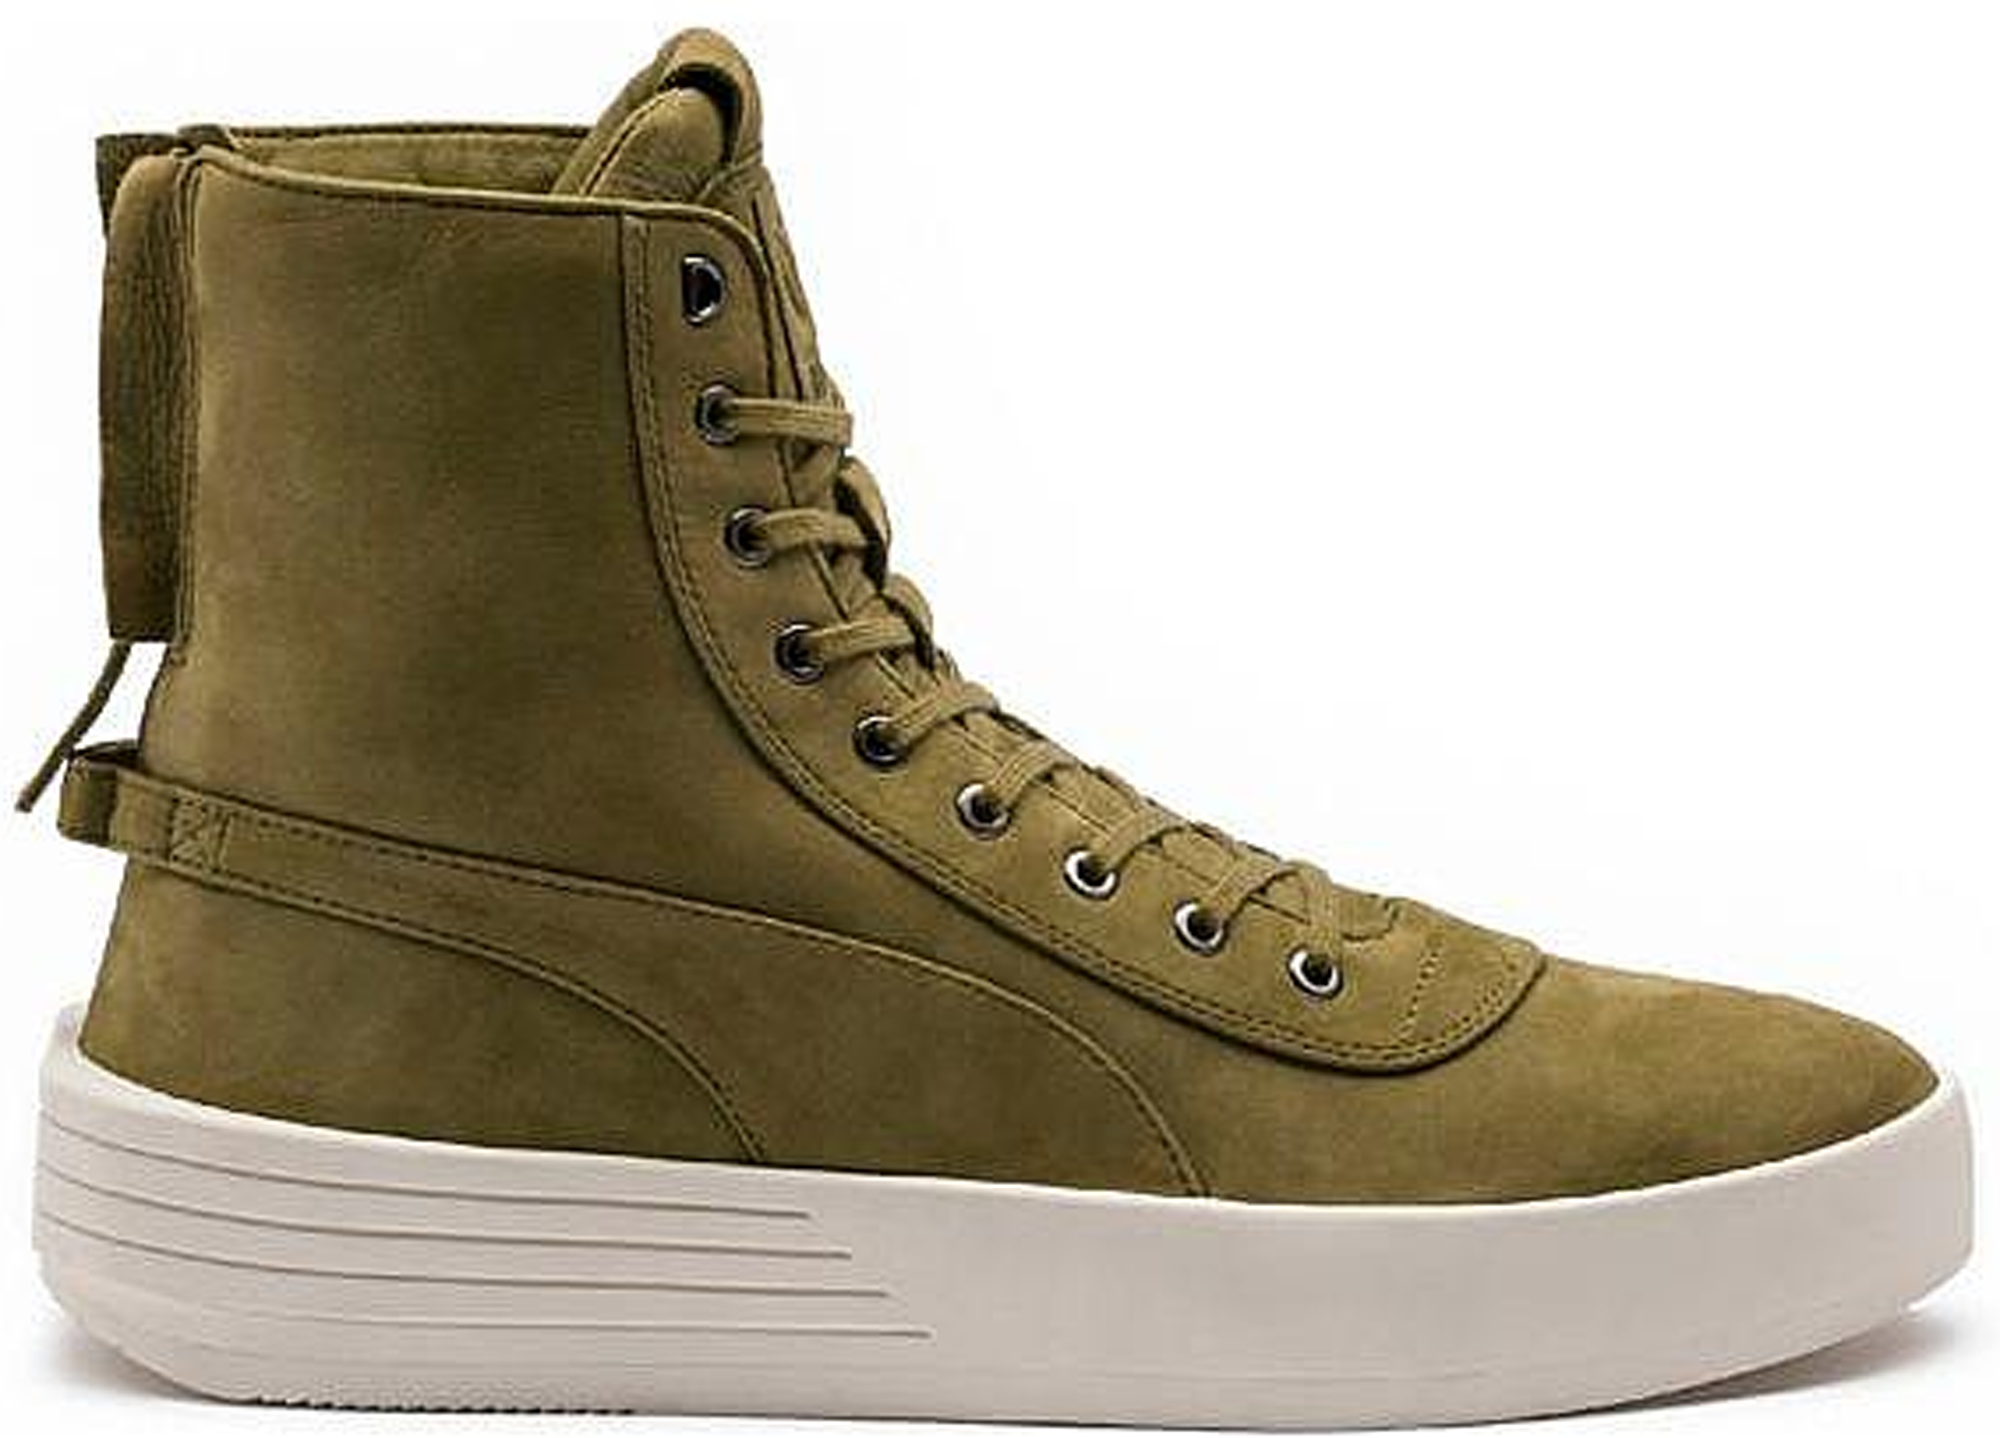 Puma Parallel The Weeknd Olive - 365039-03